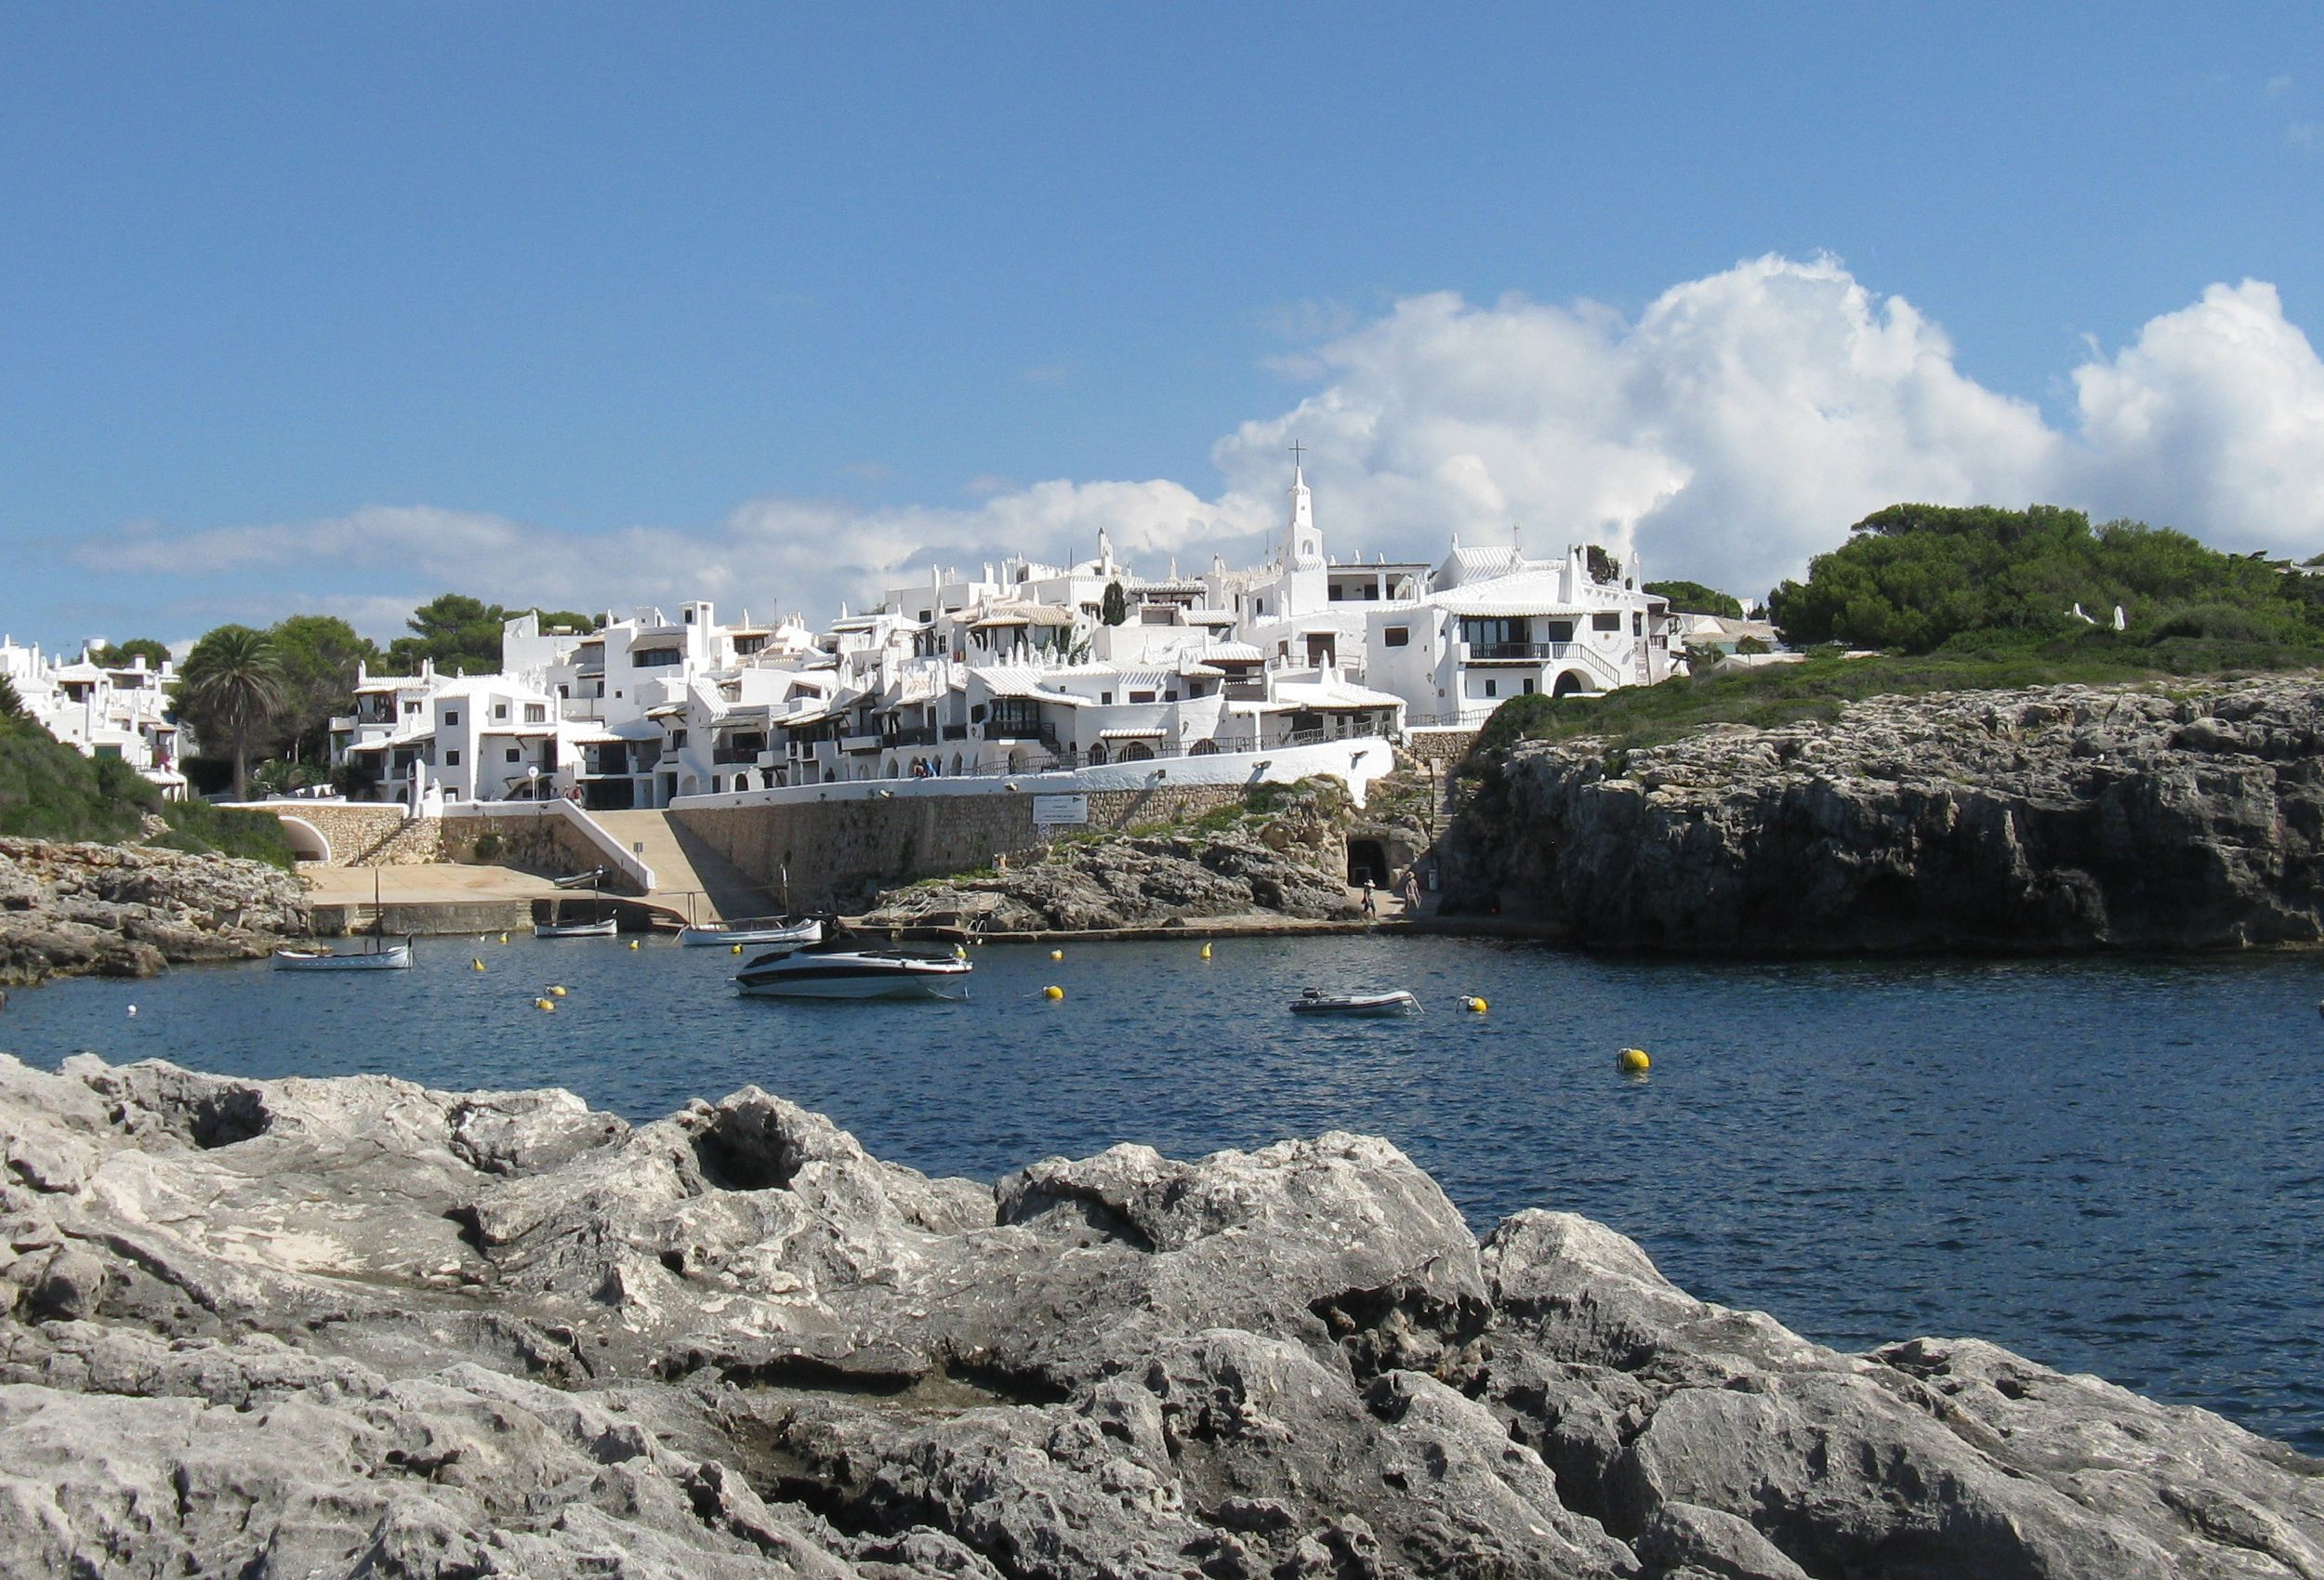 Free attractions in Menorca